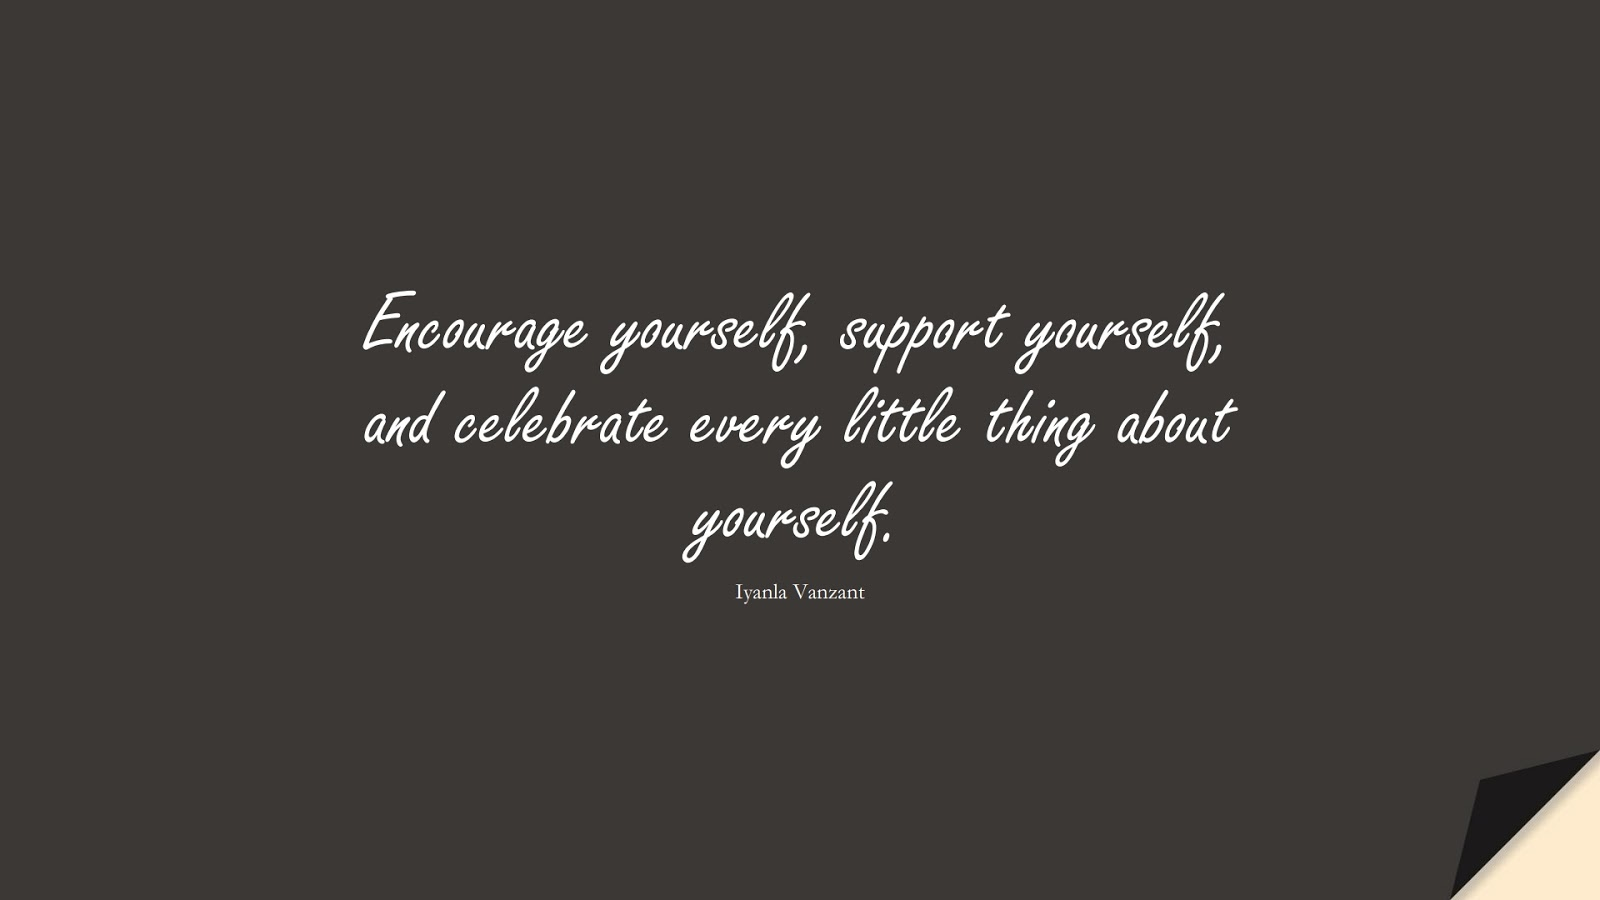 Encourage yourself, support yourself, and celebrate every little thing about yourself. (Iyanla Vanzant);  #SelfEsteemQuotes